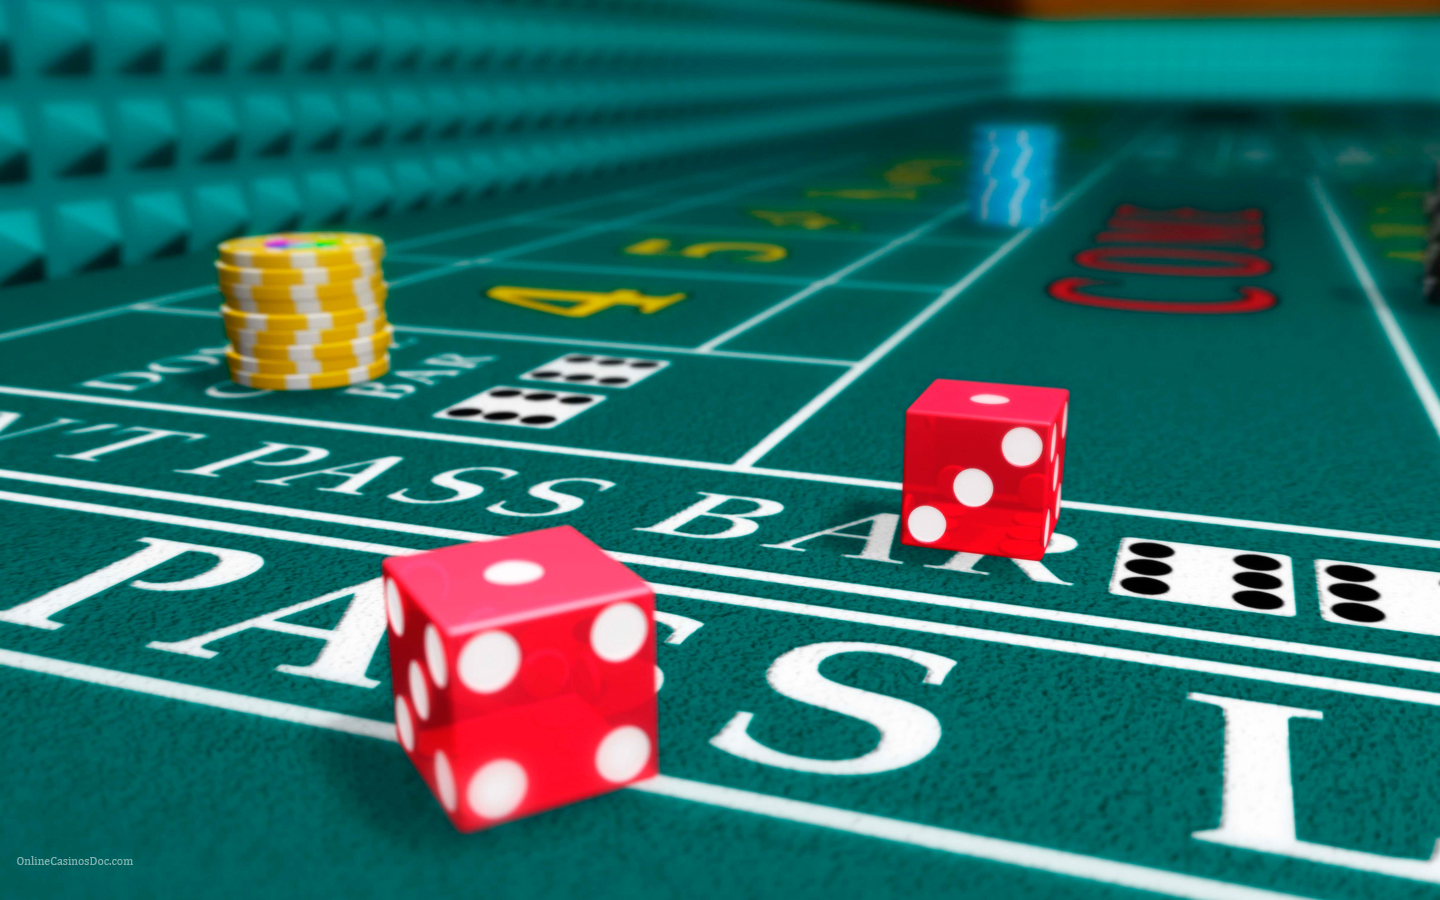 What Are The Qualities of the Best Online Casino?